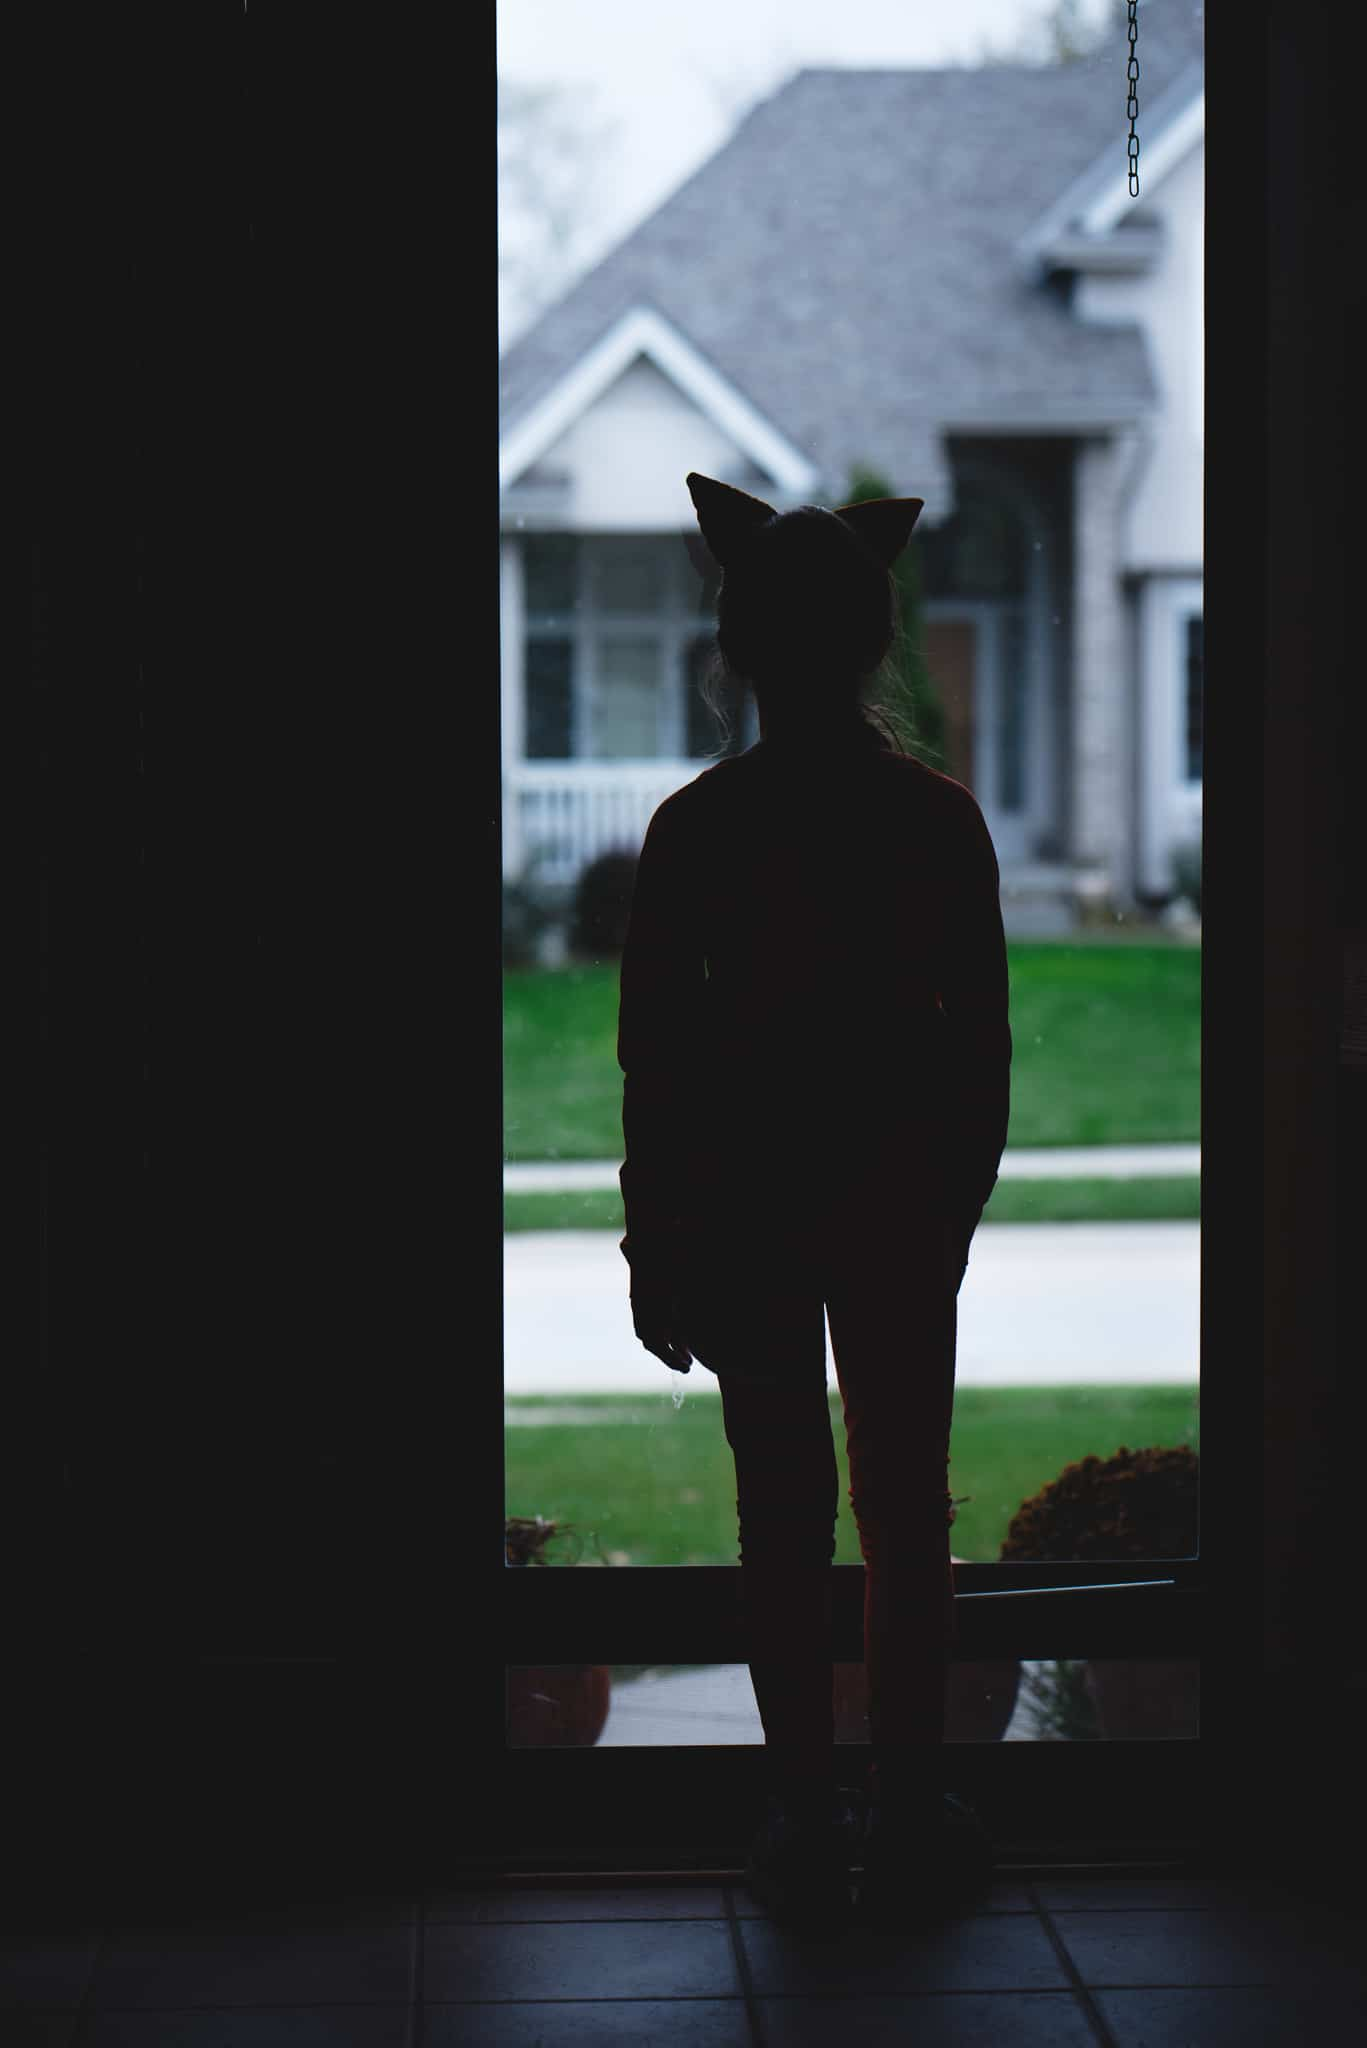 Child in fox costume standing in front of glass door creating a silhouette